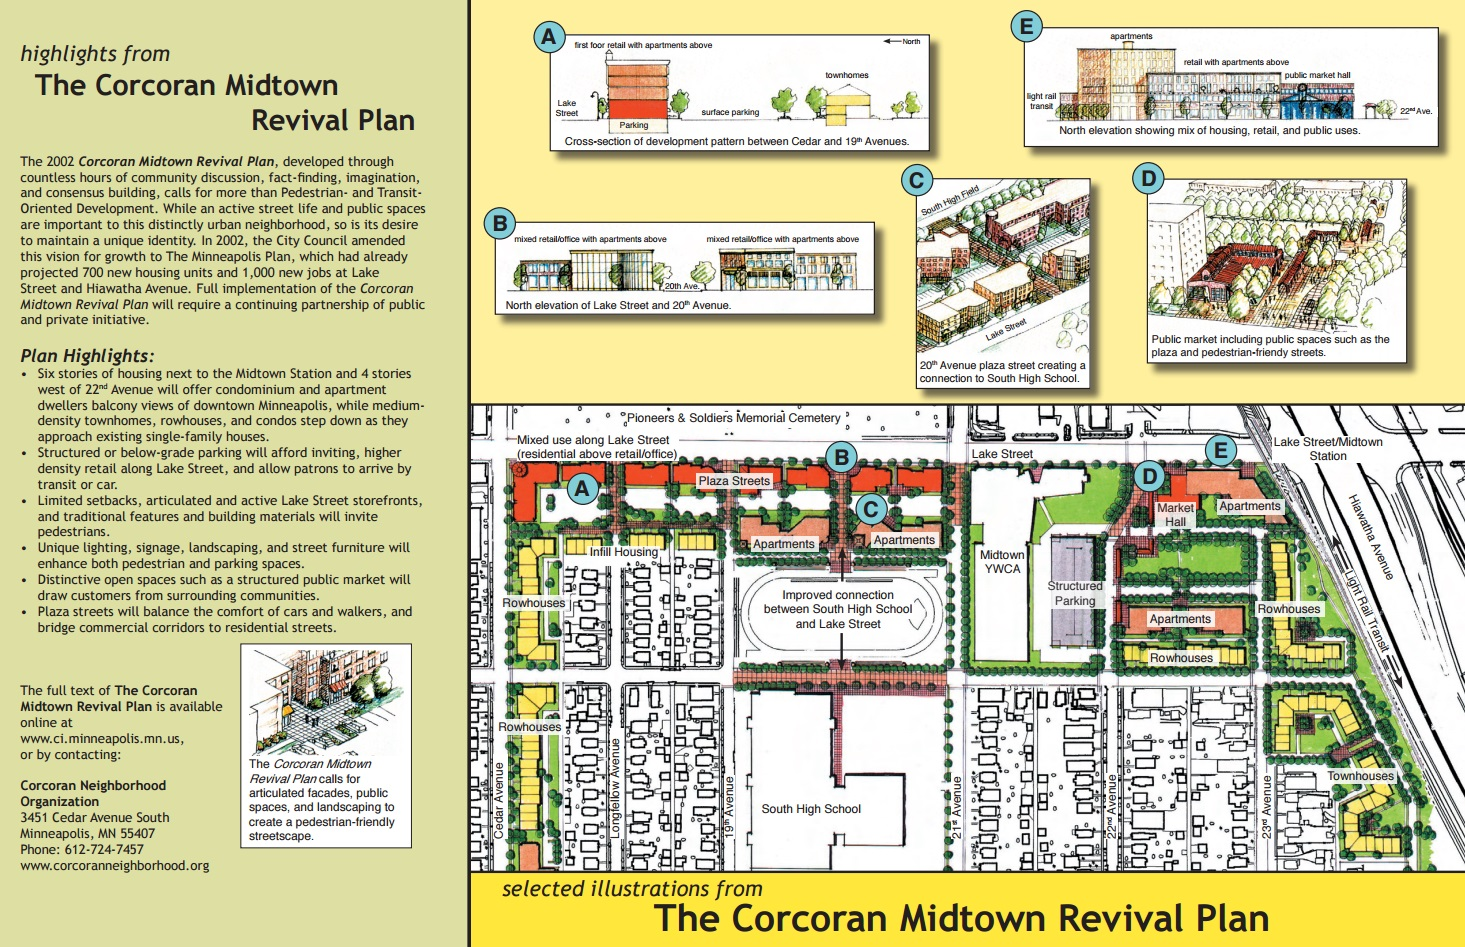 corcoran_midtown_revival_plan.jpg